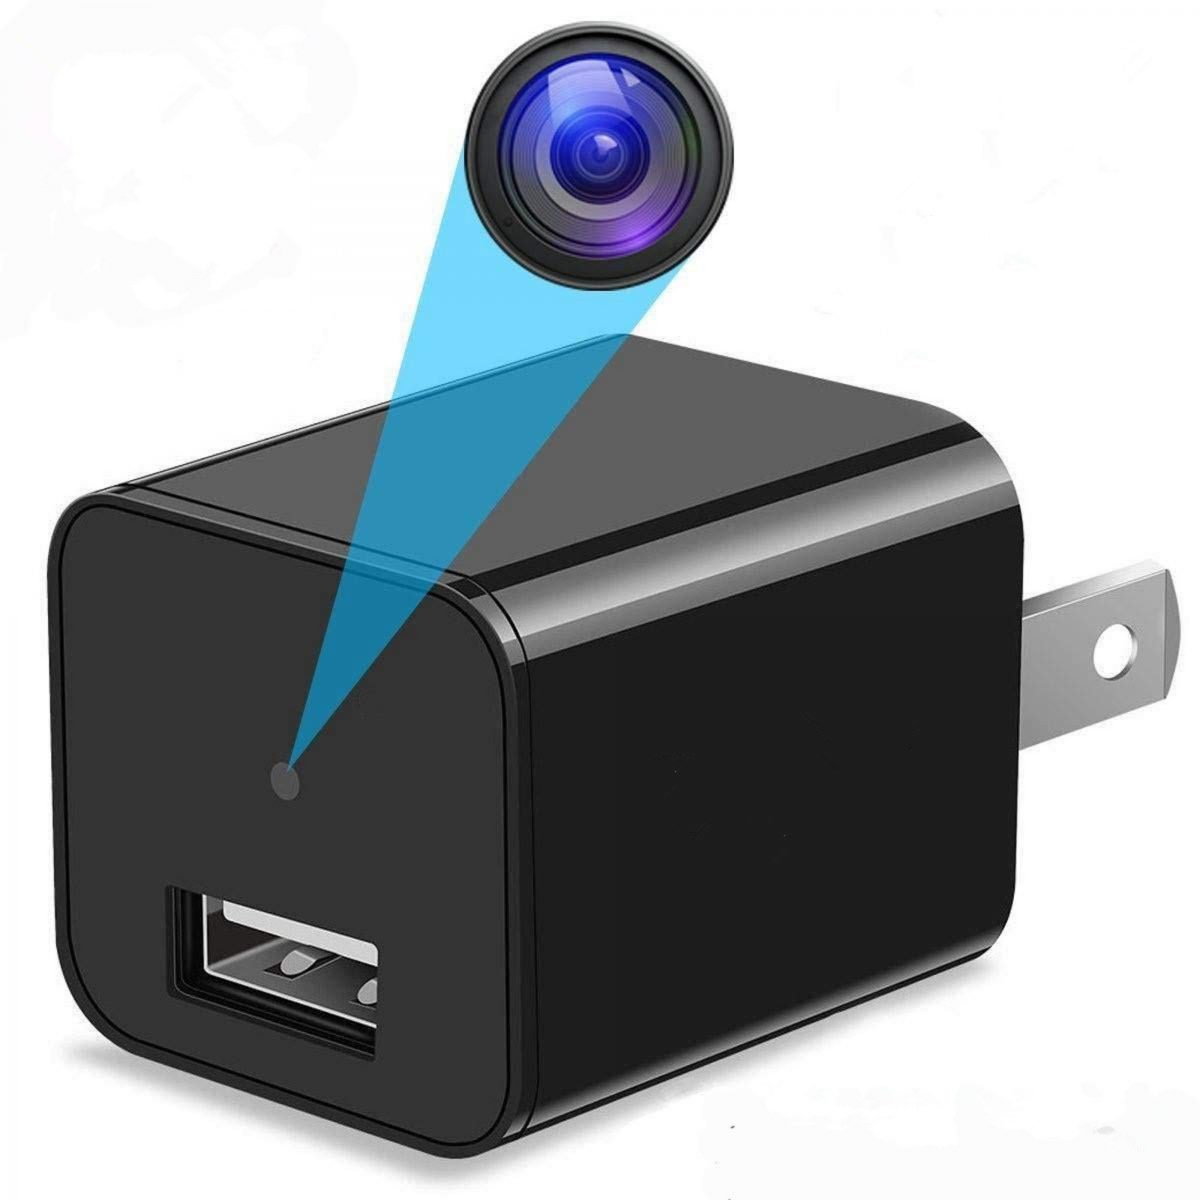 LAVENIR.VR Hidden Camera, Surveillance Camera Home Camera, Spy charger Camera is USB Charger Spy Camera